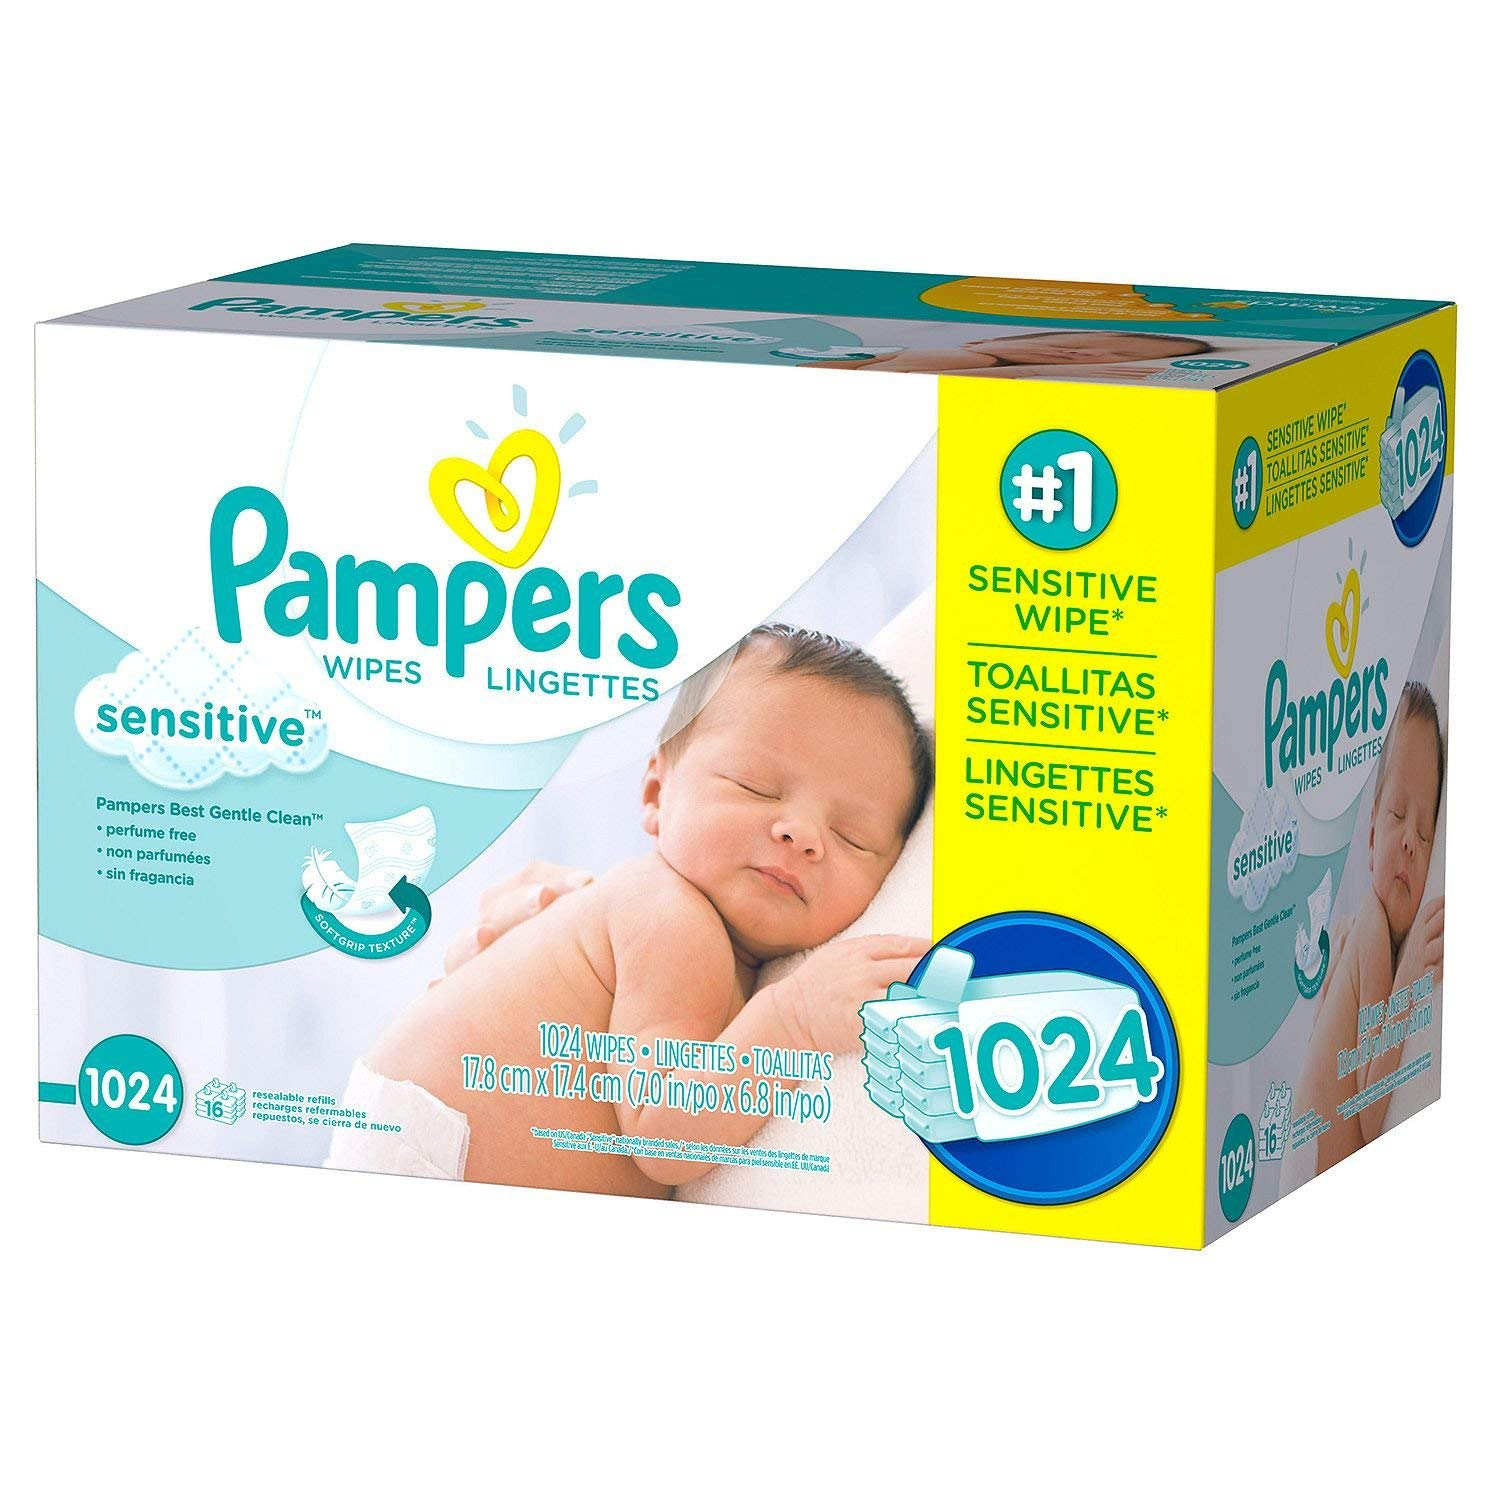 Pampers Stages Sensitive Wipes 1024 count